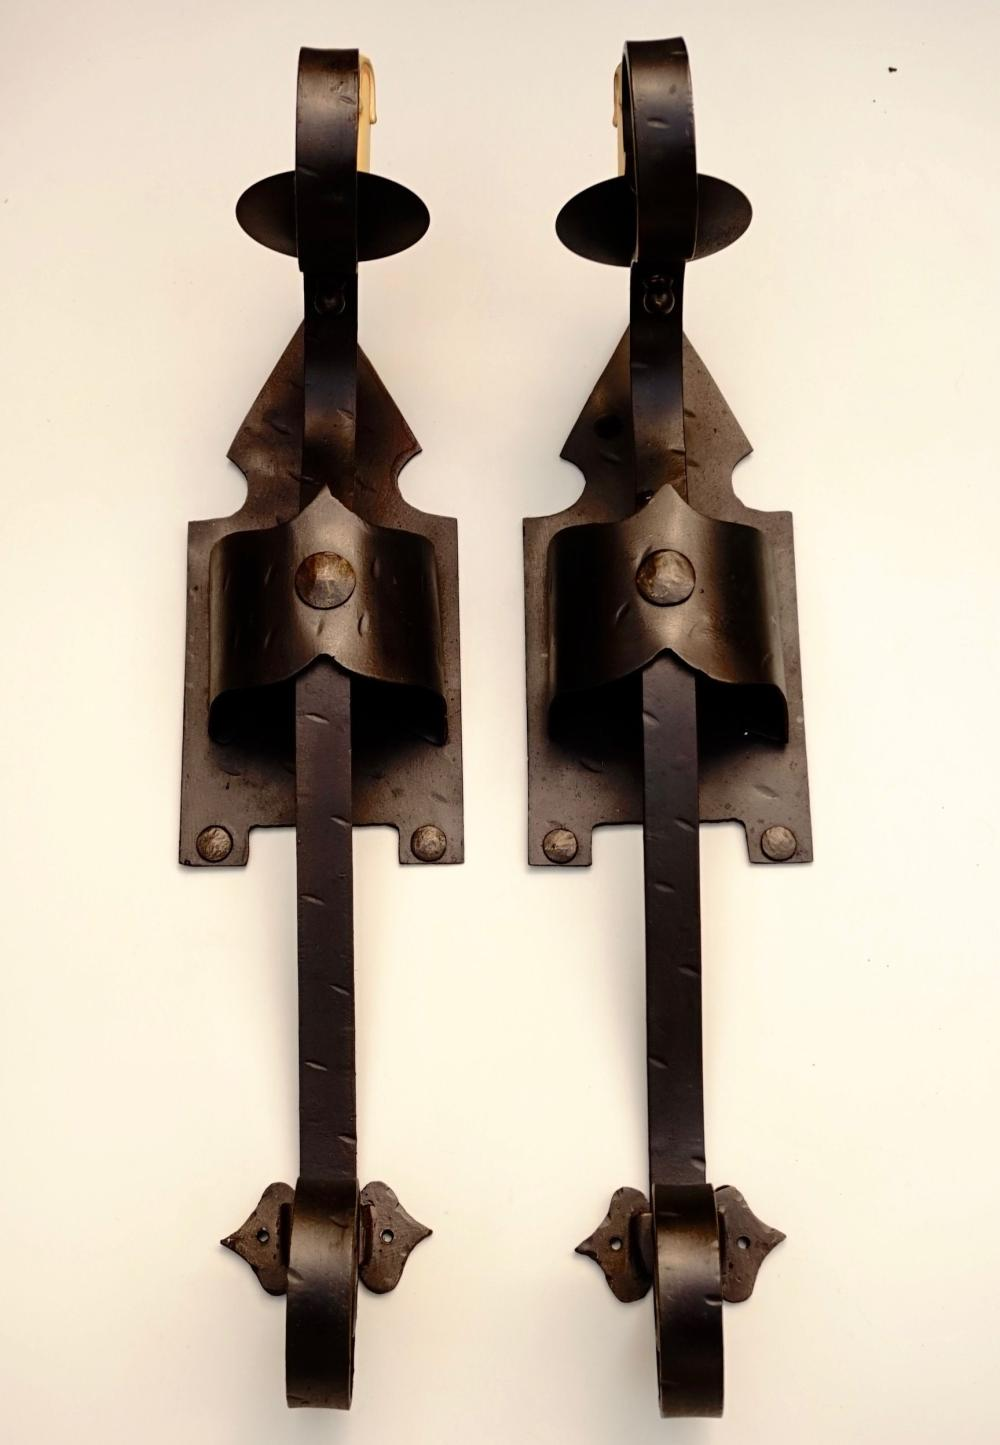 Sold Price Large Italian Wrought Iron Medieval Style Light Sconce April 3 0120 11 00 Am Pdt